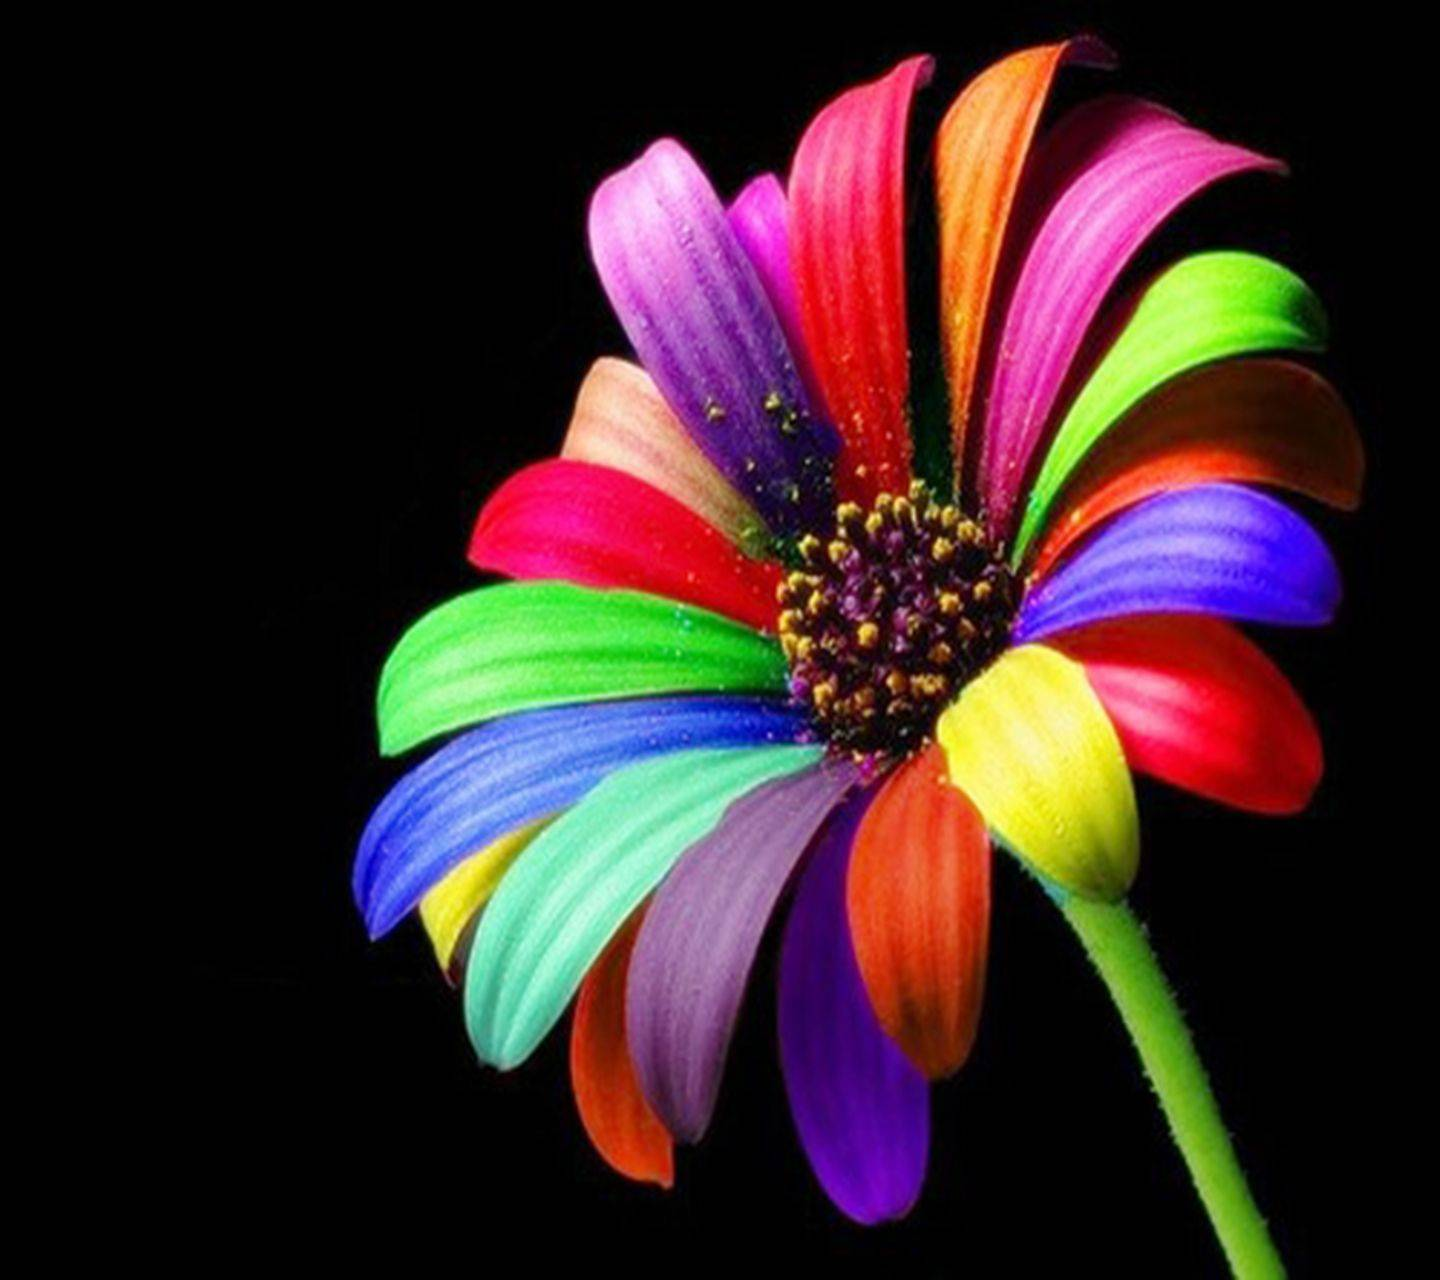 Colourful Flower Hd